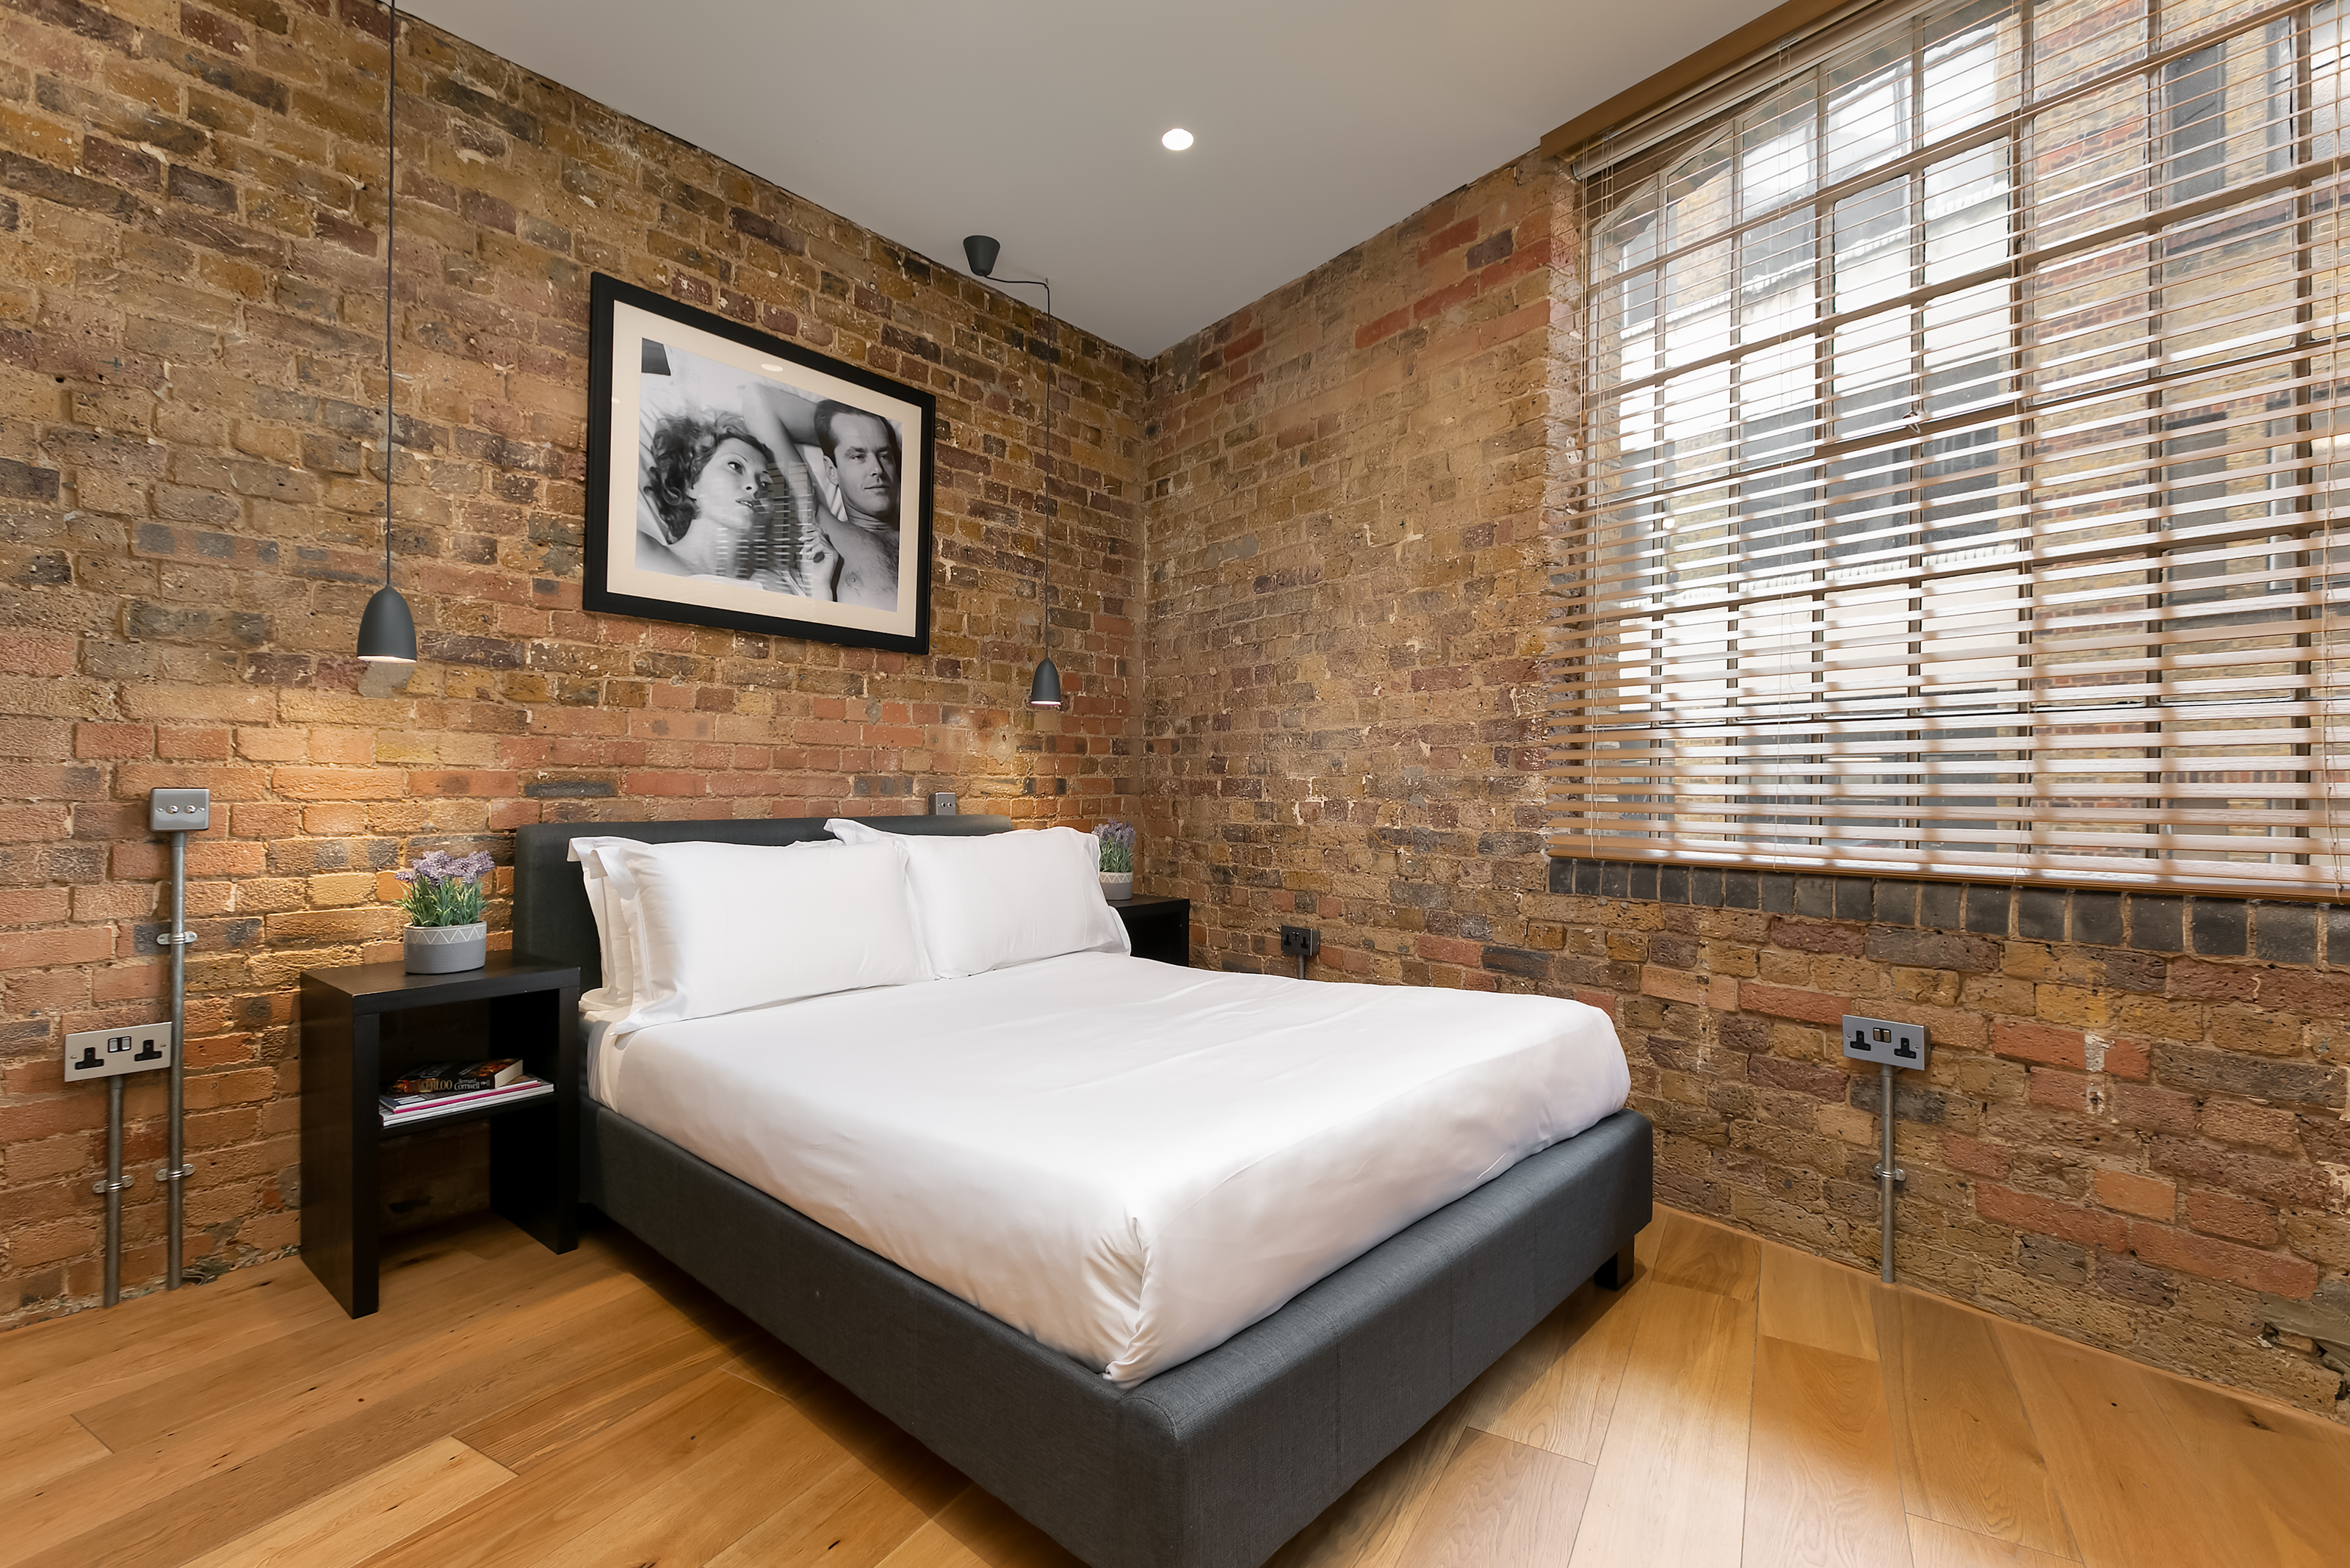 Lovelydays luxury service apartment rental - London - Fitzrovia - Wells Mews A - Lovelysuite - 2 bedrooms - 2 bathrooms - Queen bed - 5 star serviced apartments in london - 57181520d1ab - Lovelydays